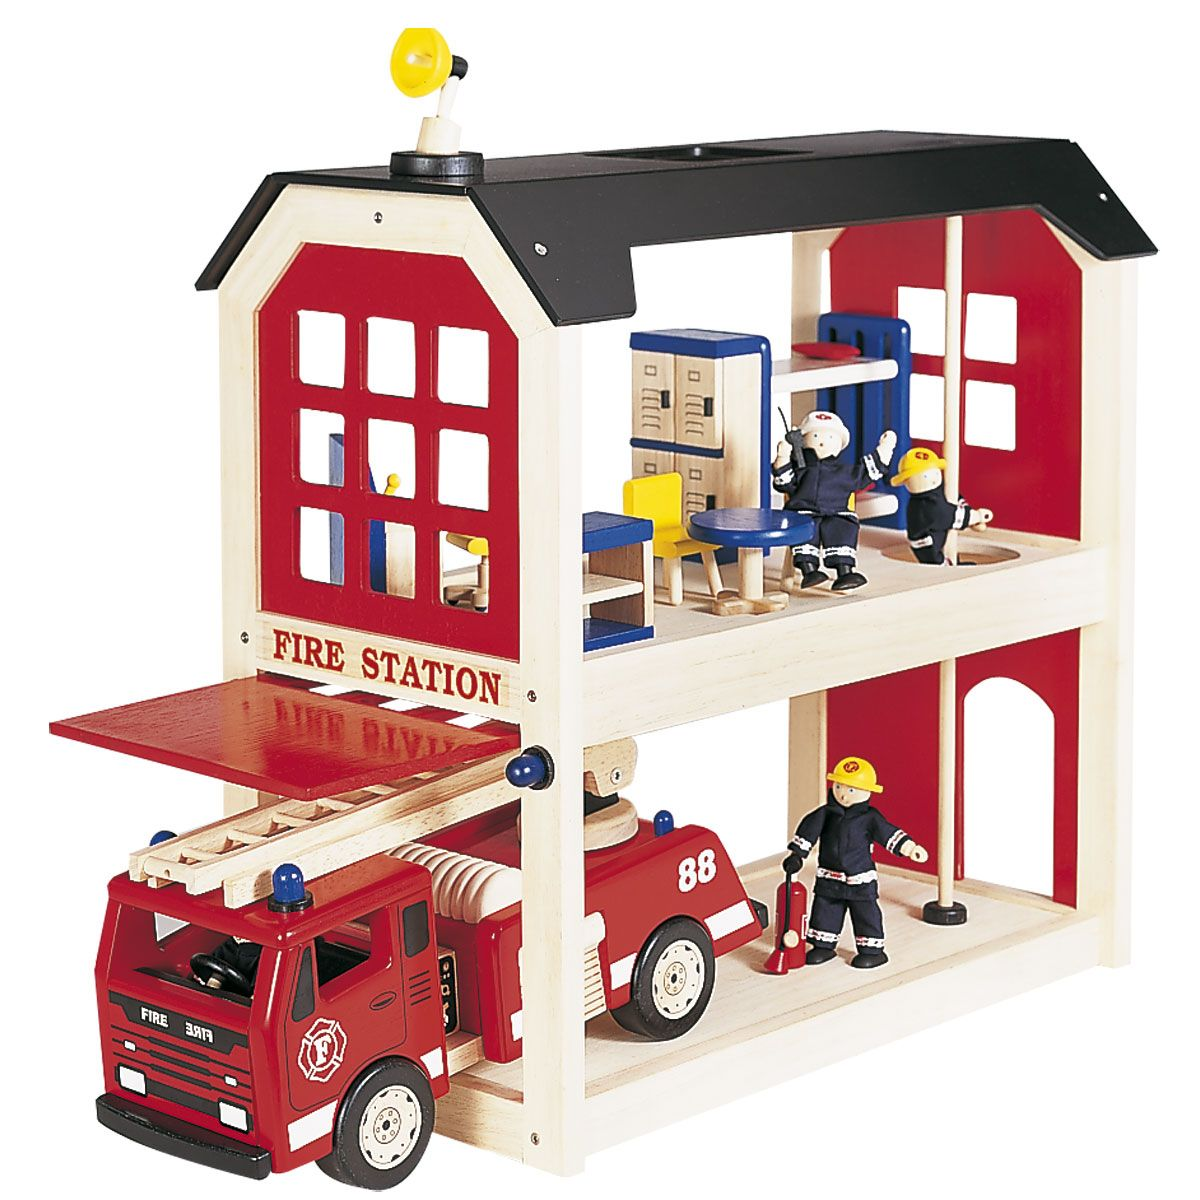 Fire Station Wooden Toys For Children Fire Station